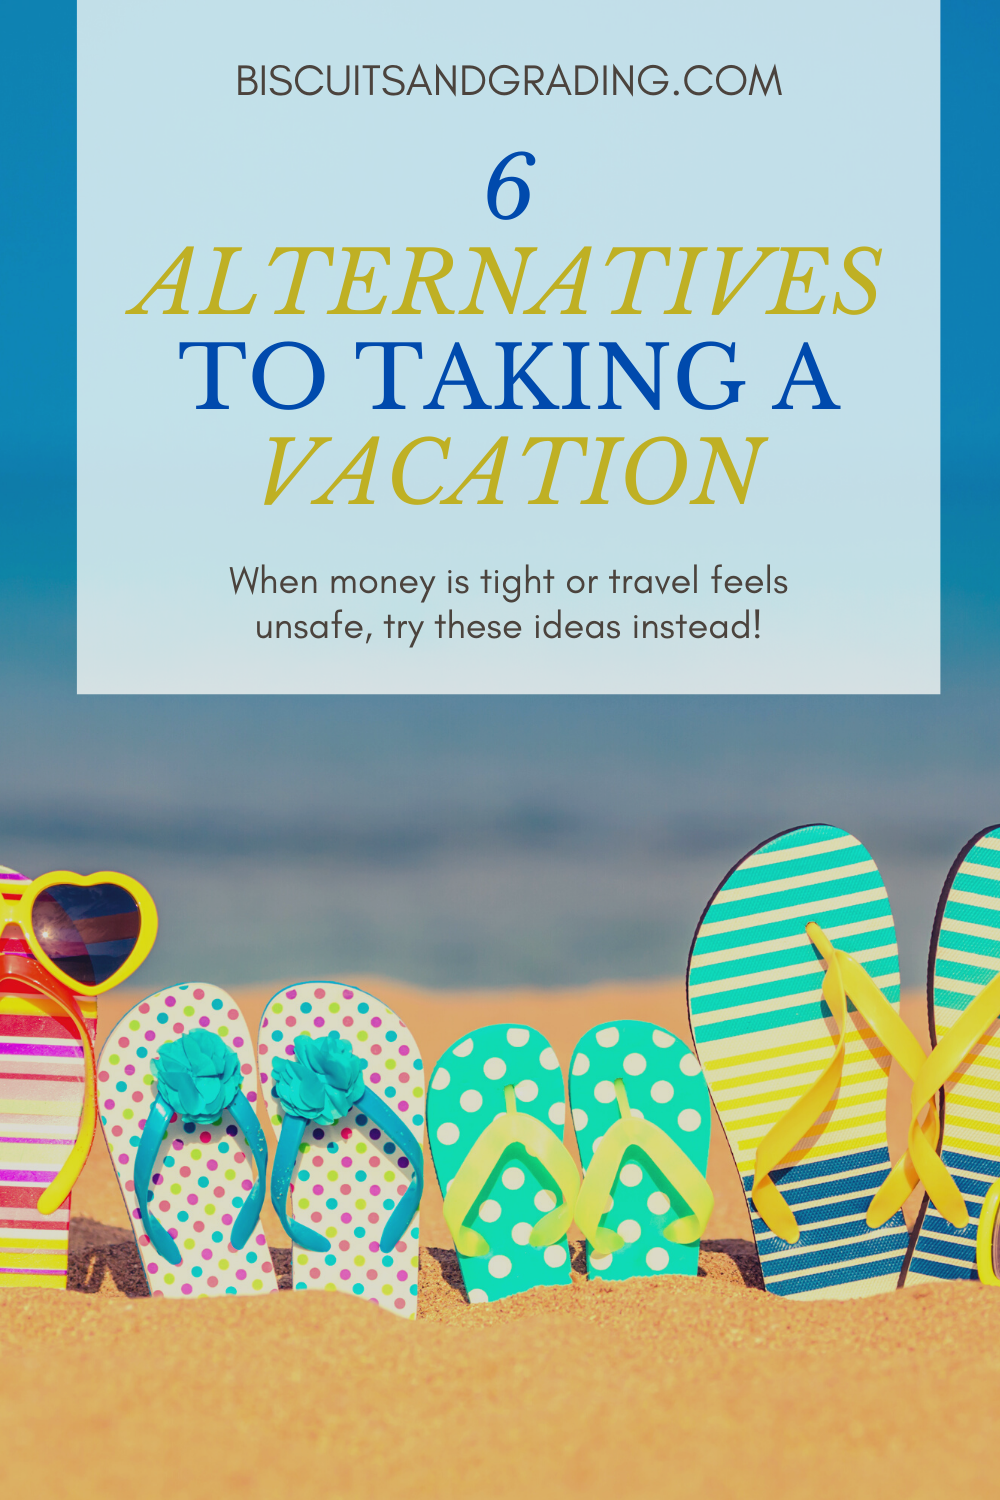 vacation alternative ideas pinterest image with sandals